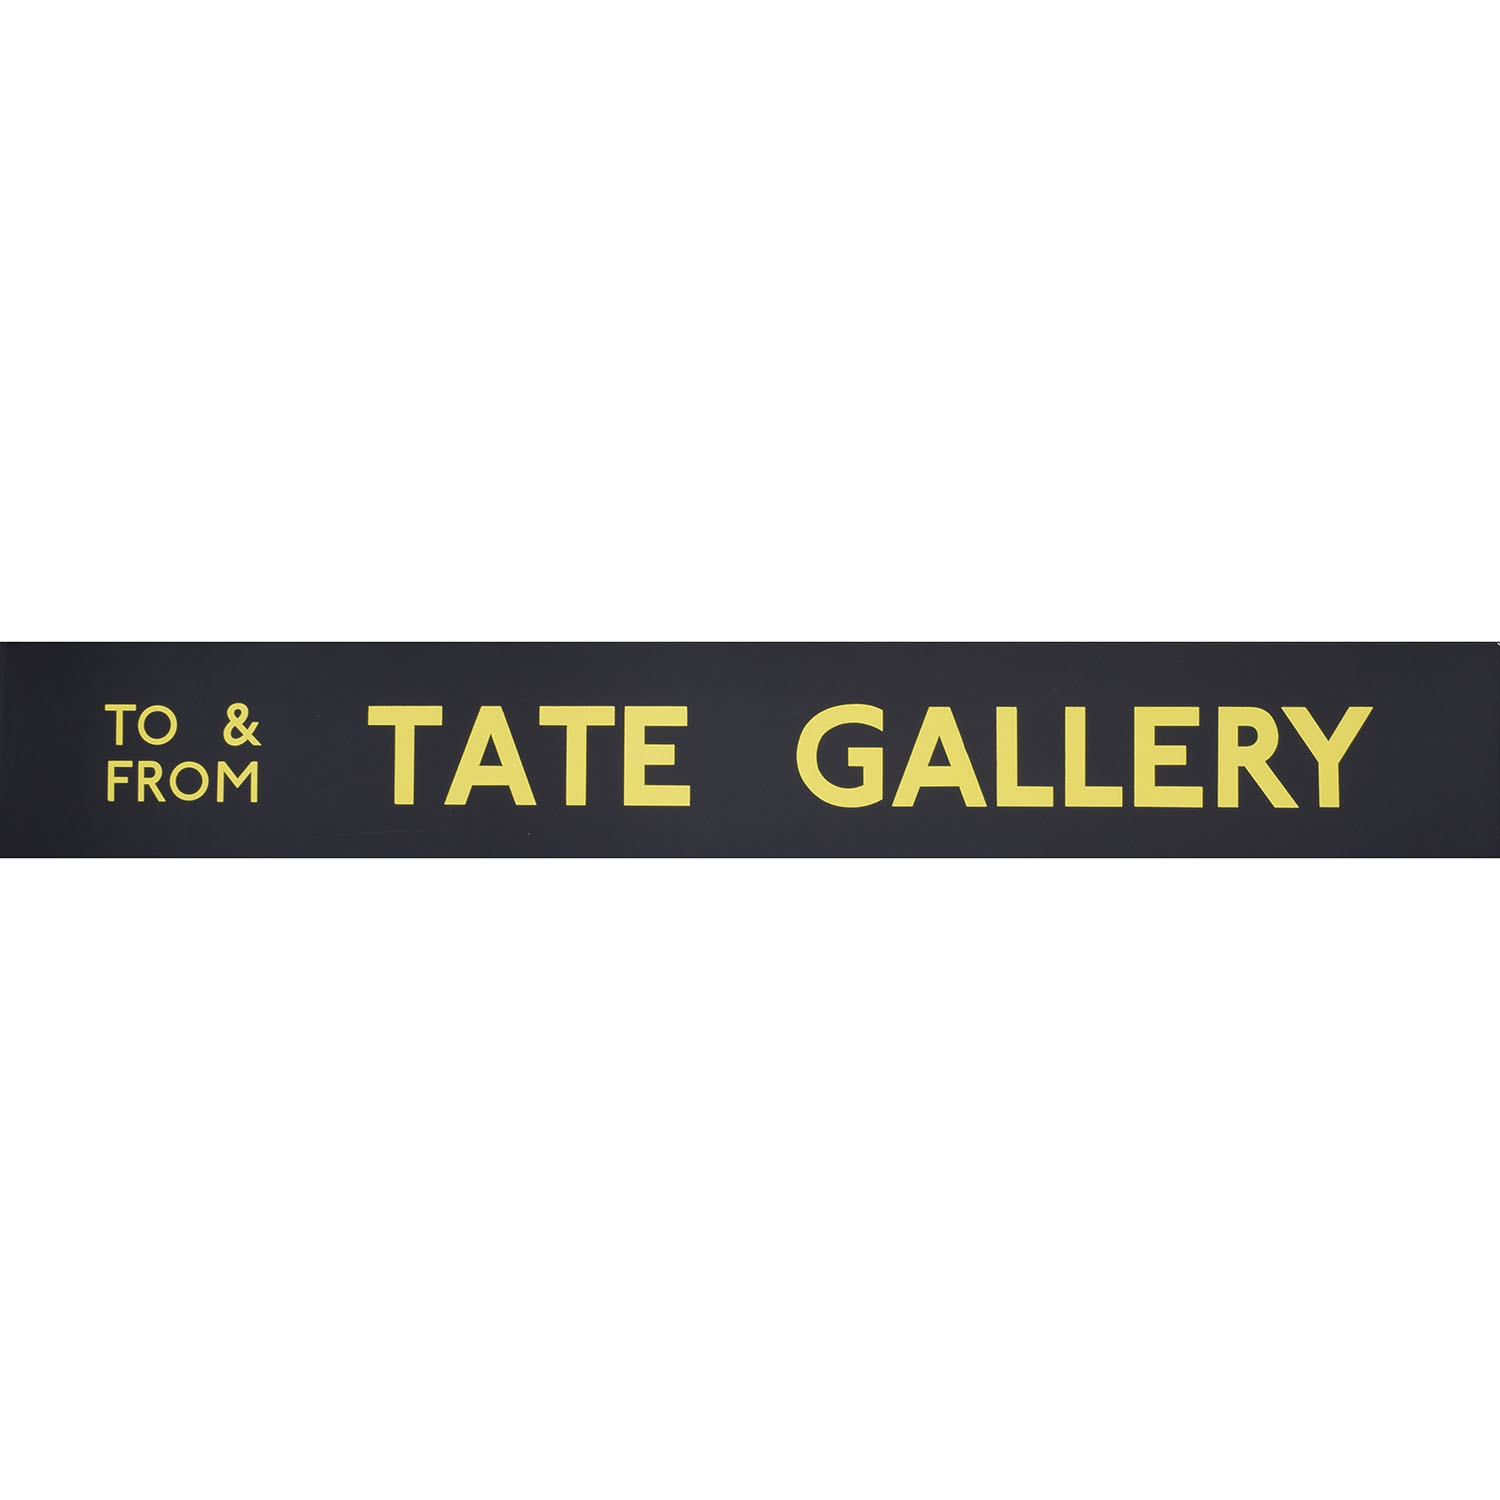 Tate Gallery Routemaster Slipboard Poster c1970